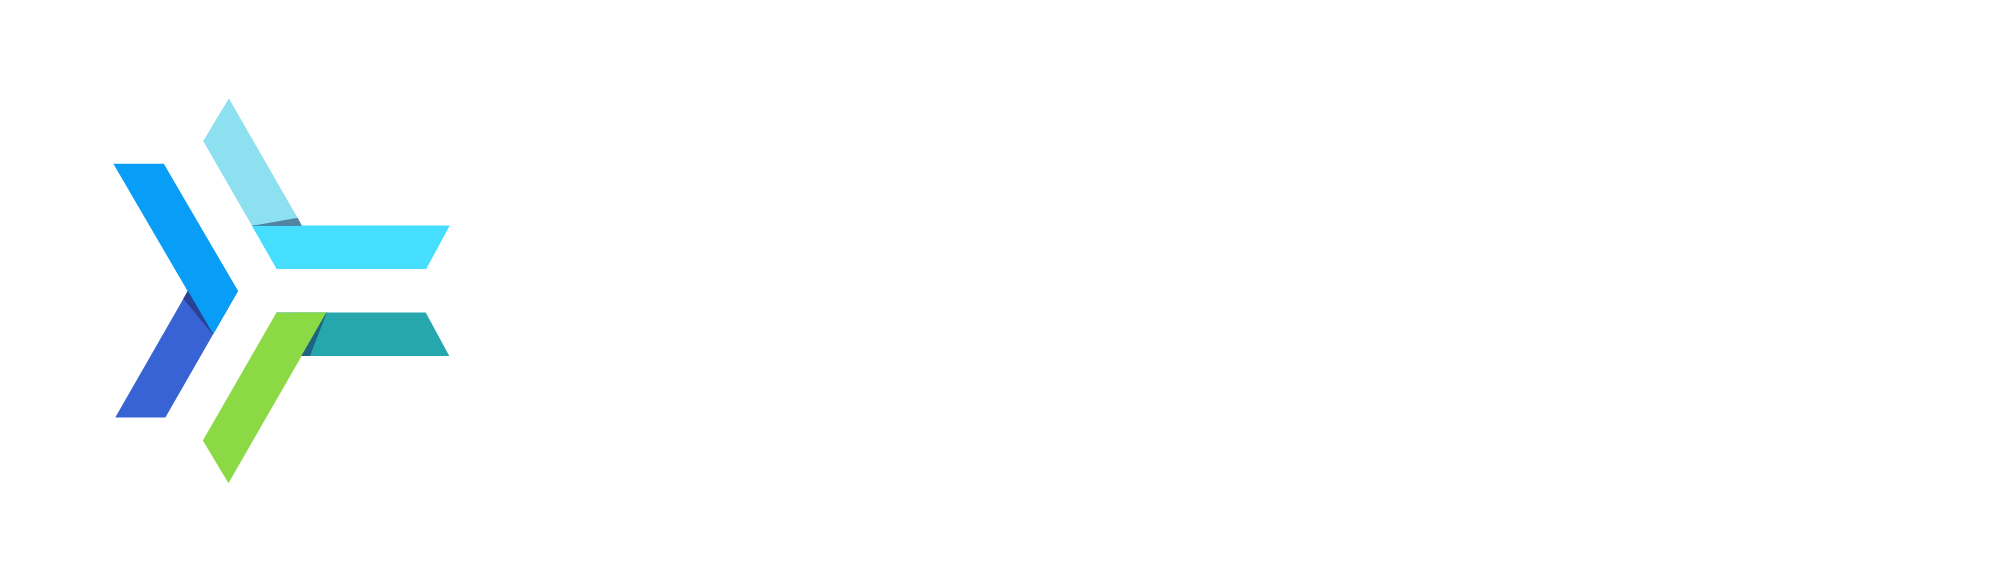 Power Protection Industries logo